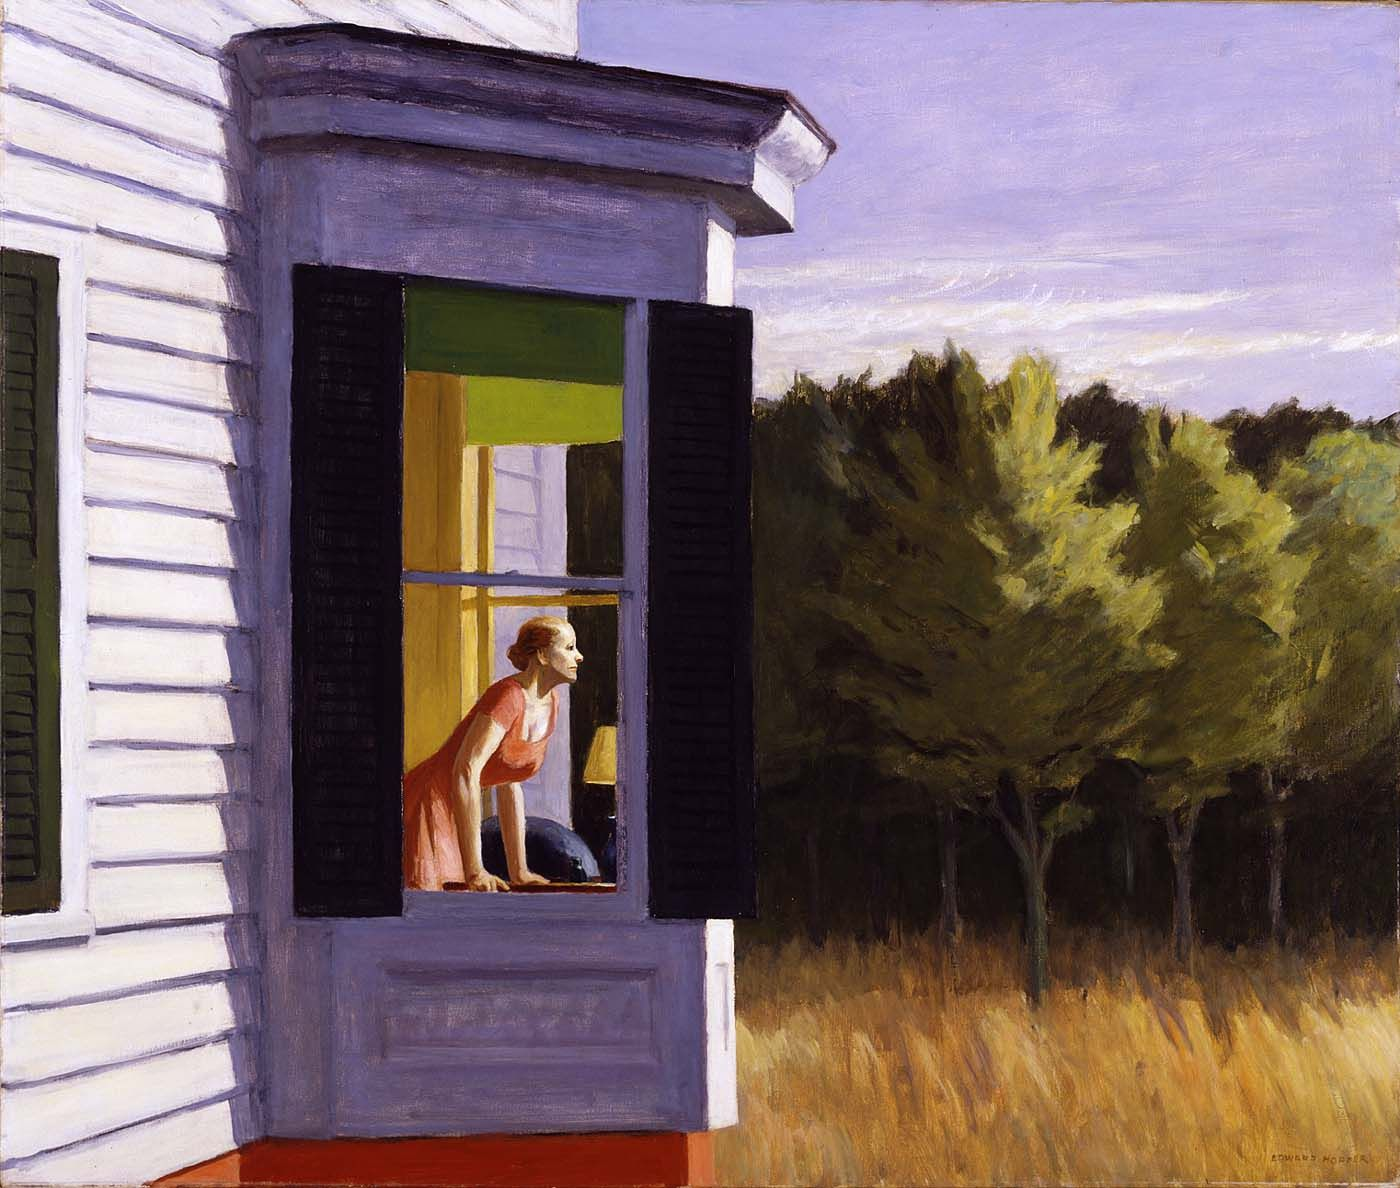 Edward hopper art hopper fen tre peinture window for Art et fenetre nimes